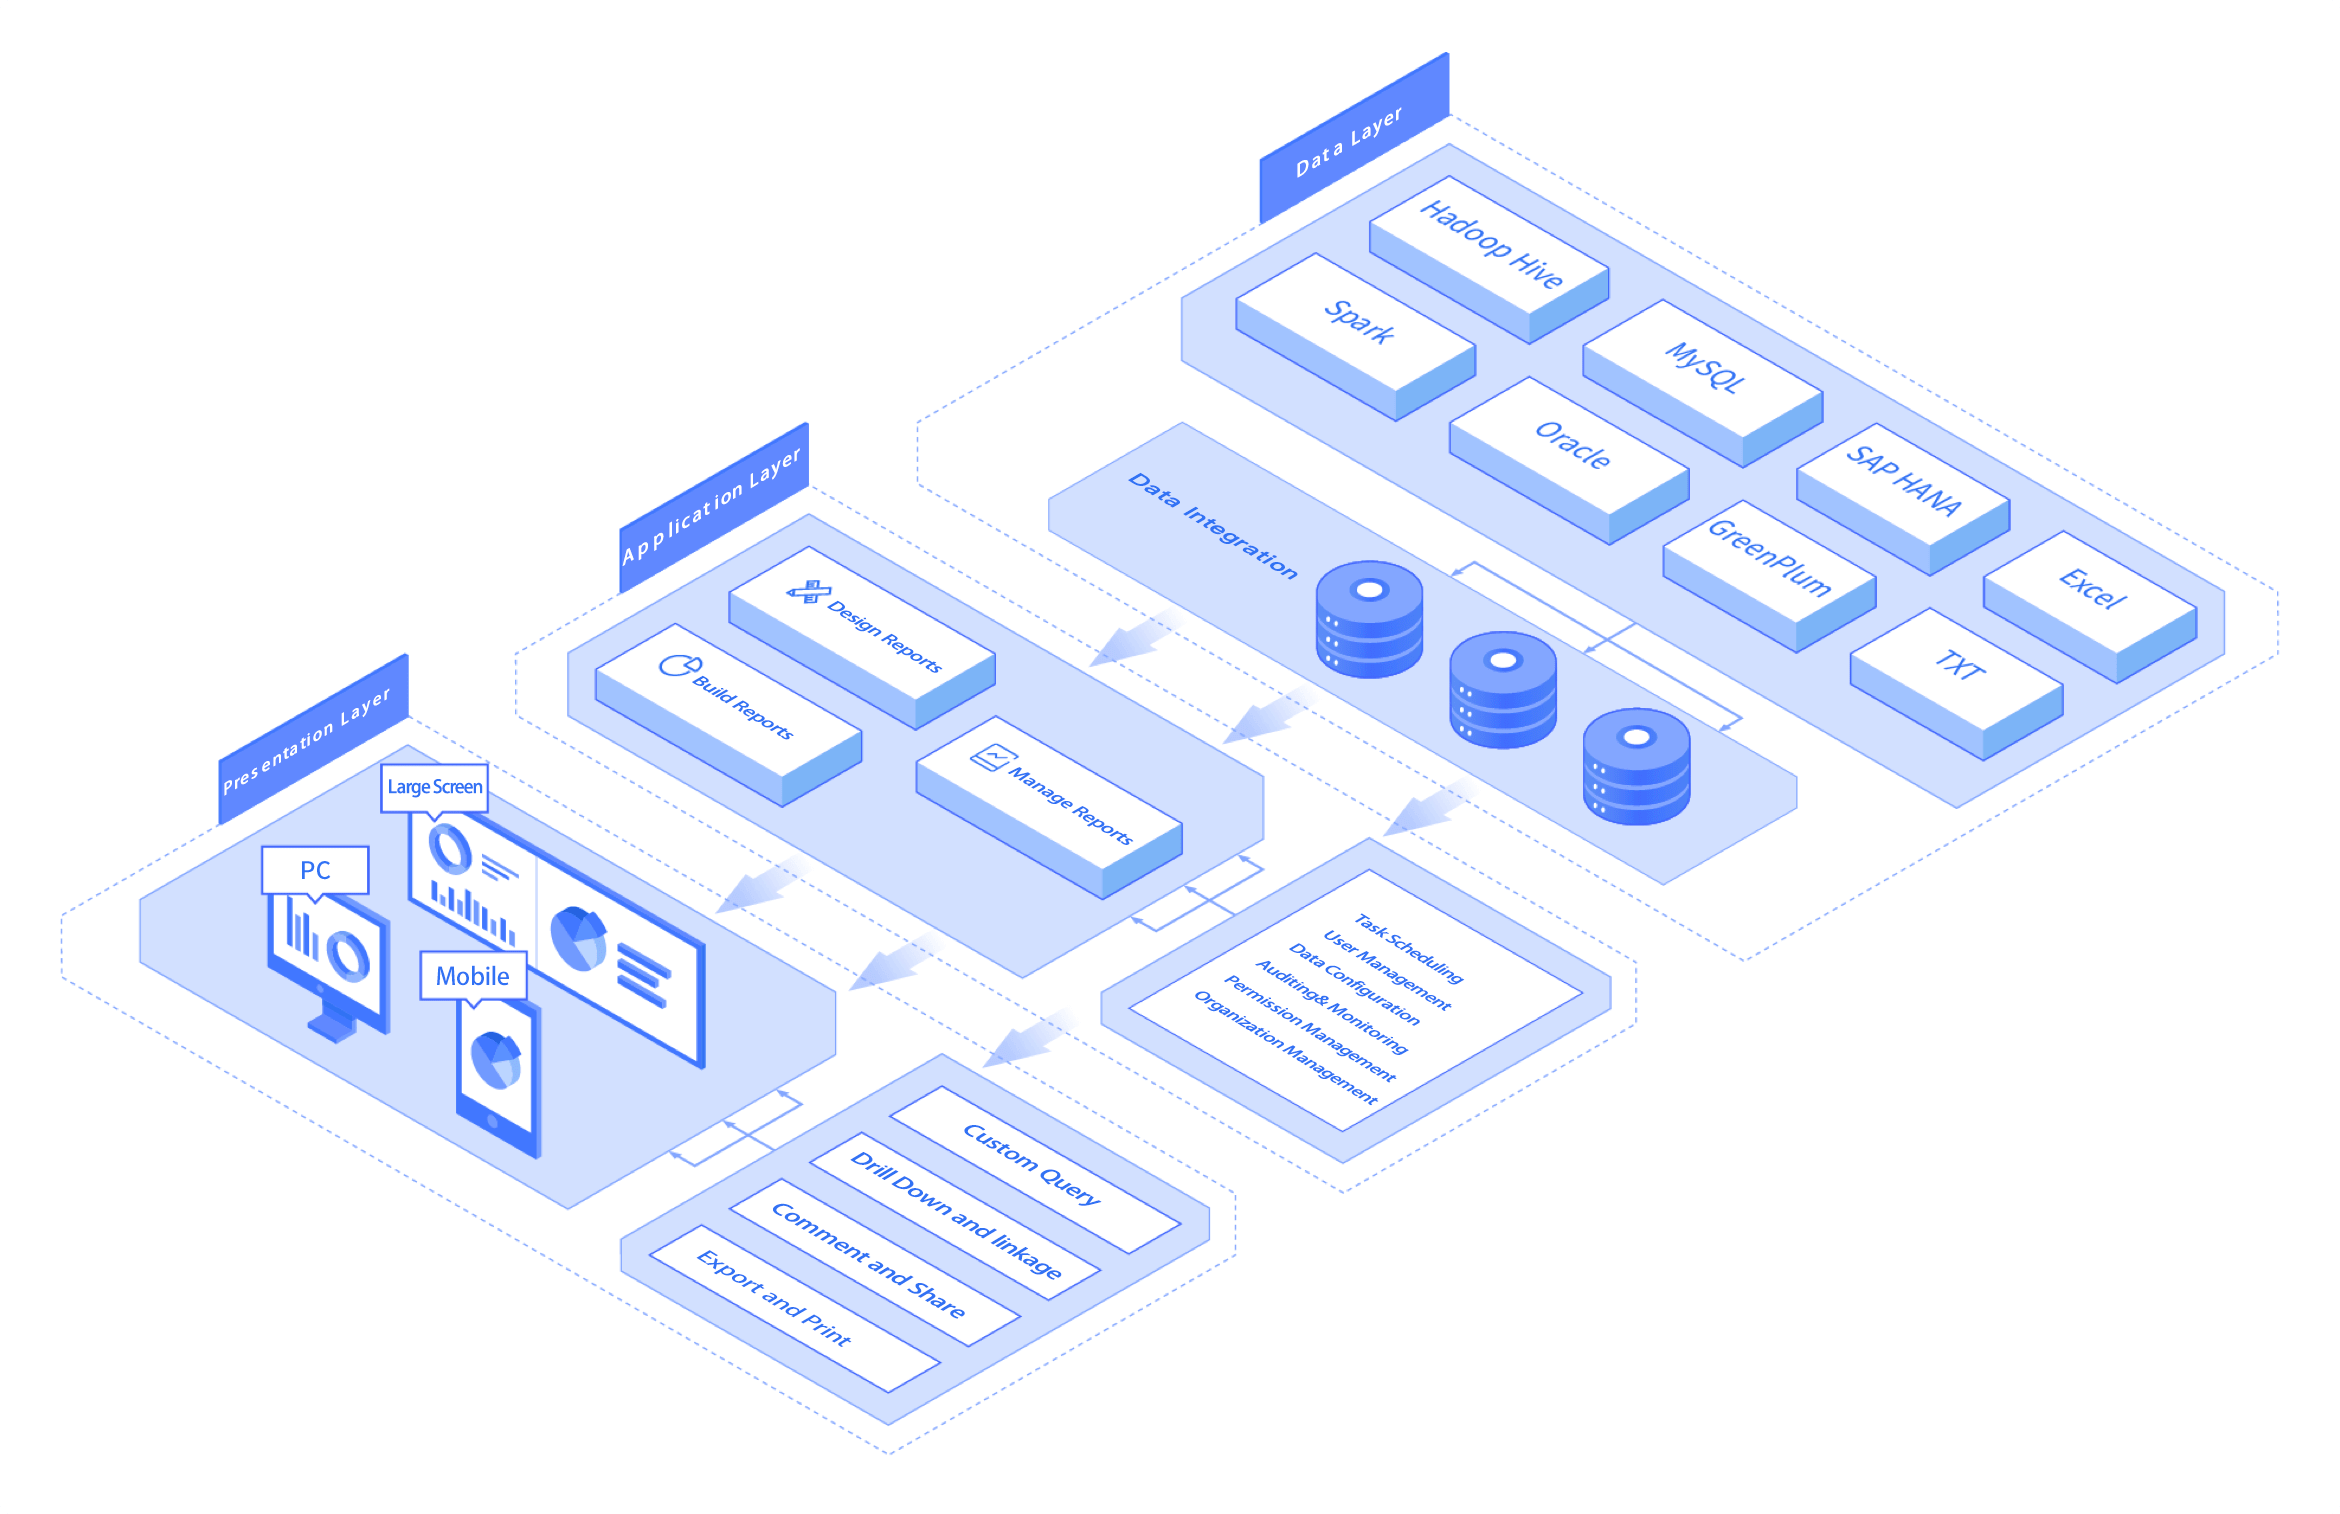 reporting platform architecture